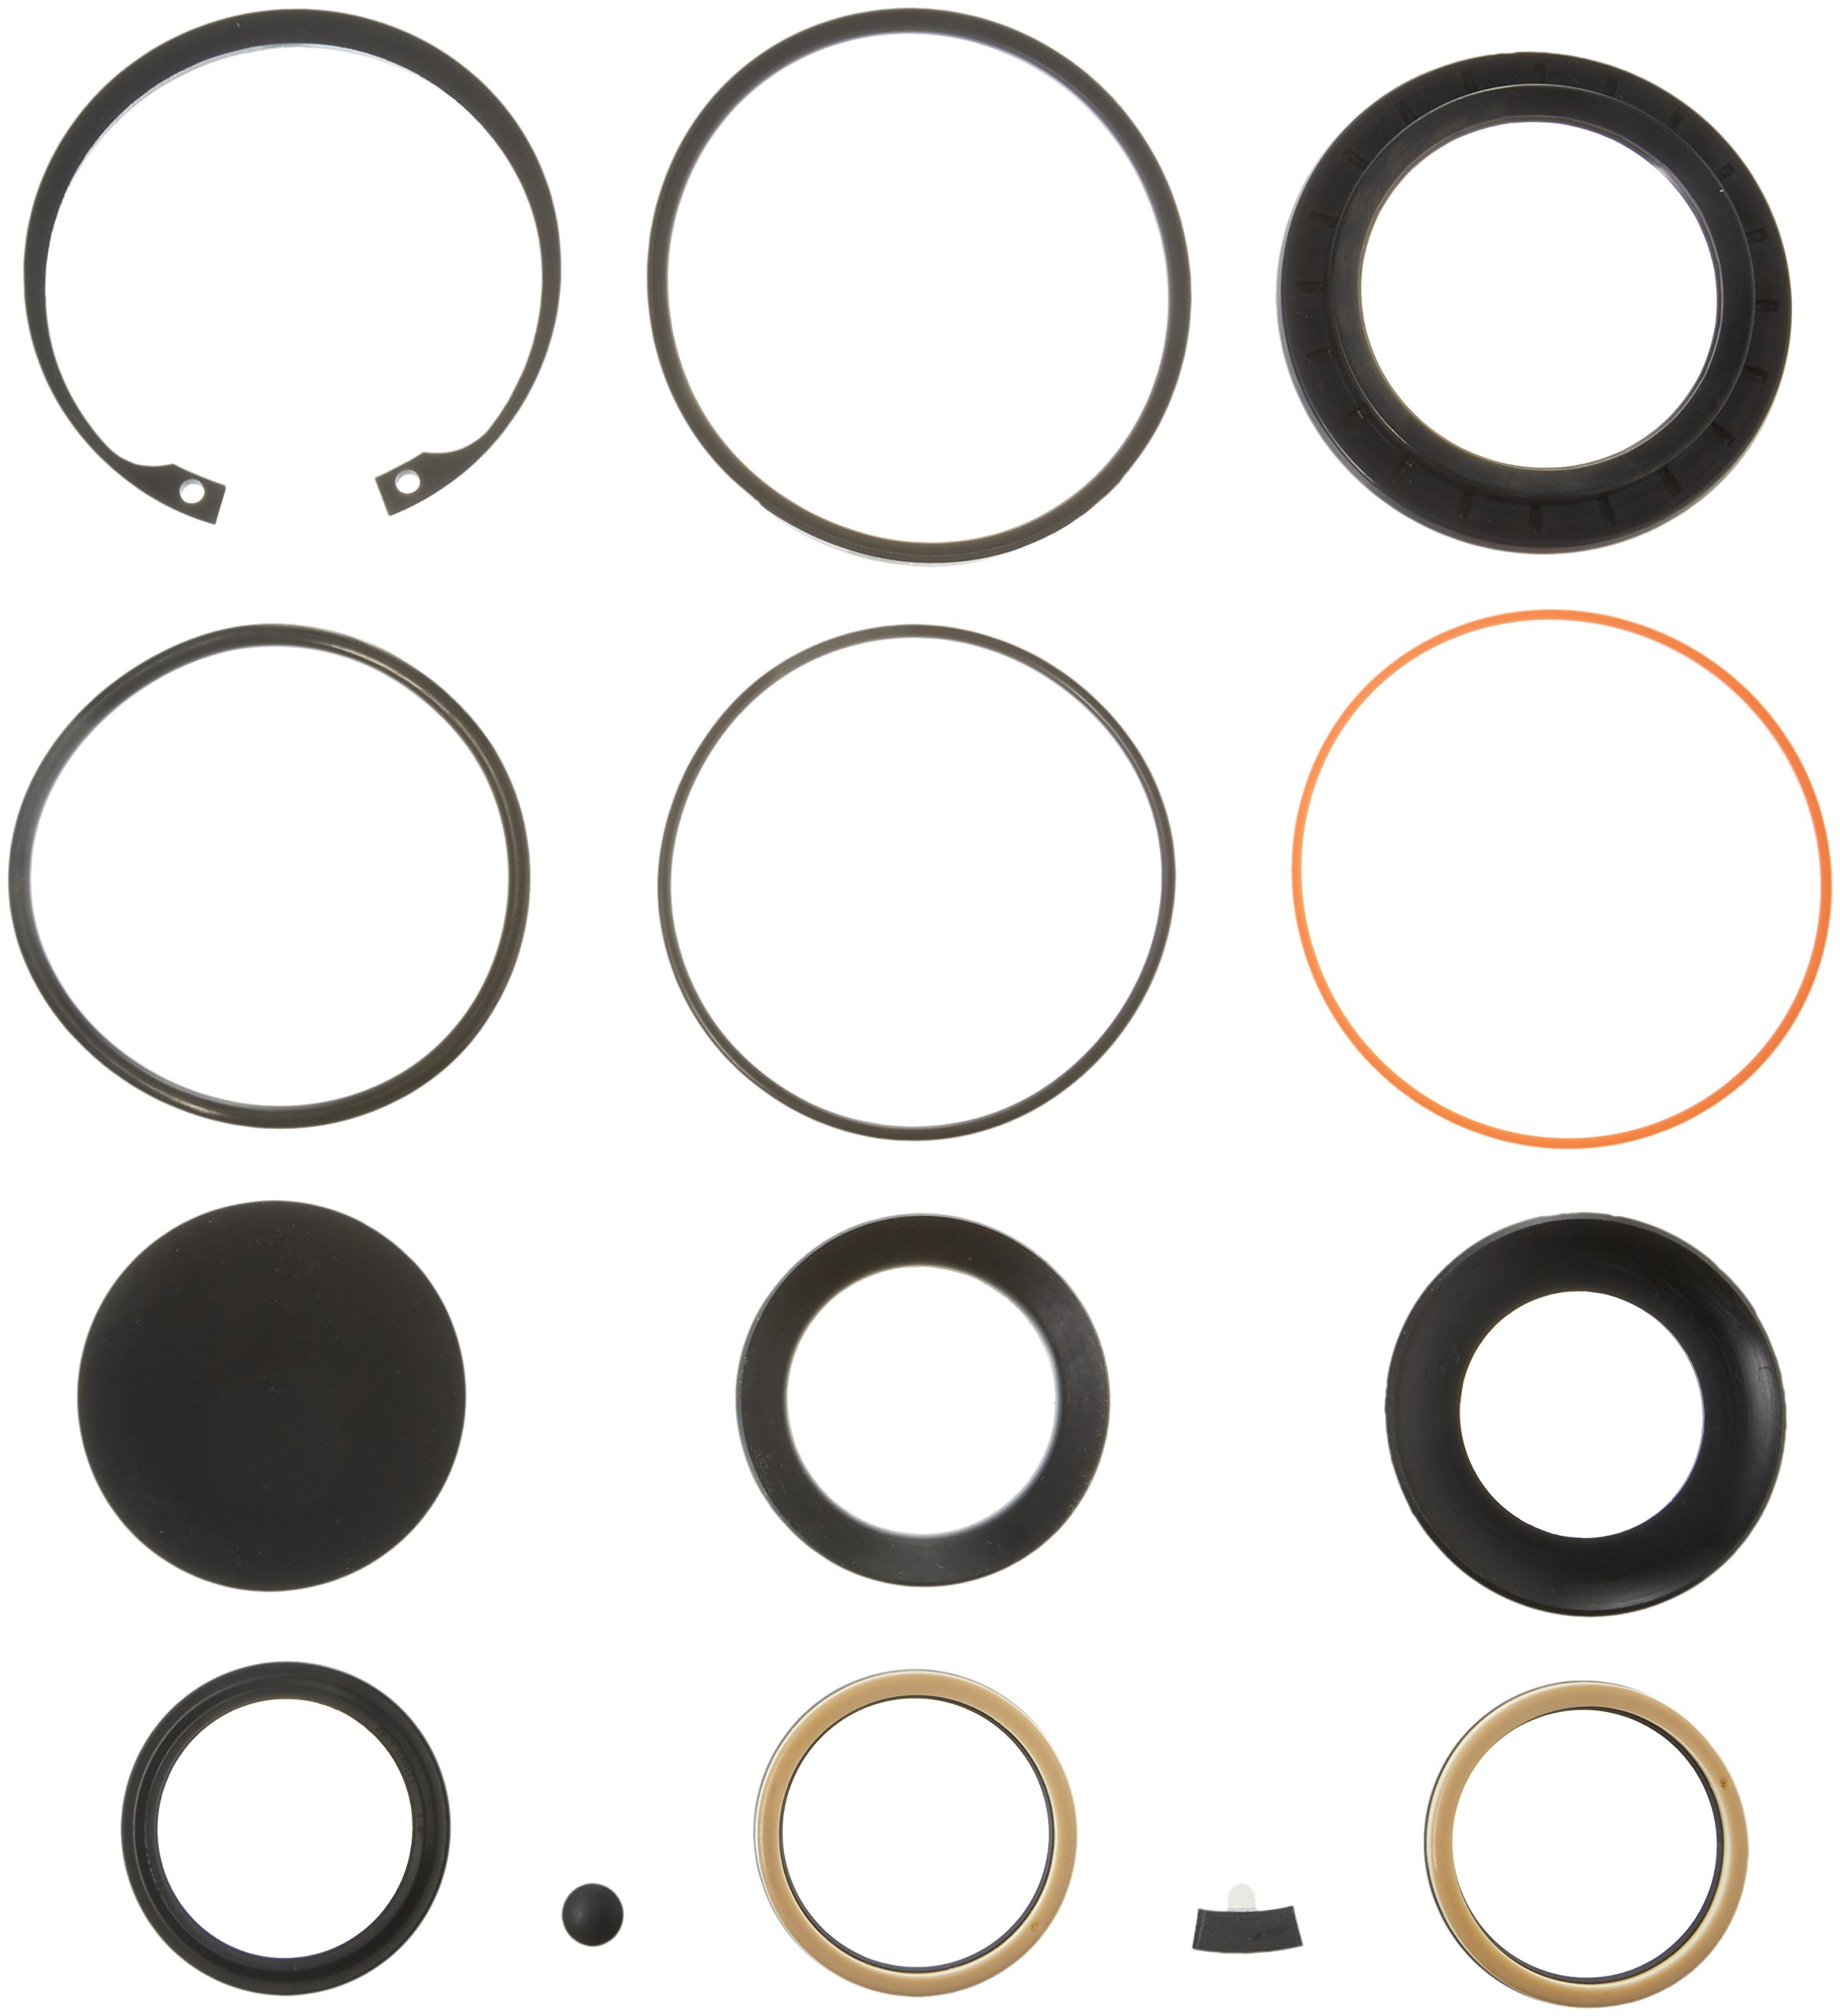 R. H. Sheppard 5545741 Sector Shaft Kit with Snap Ring/L-Seal